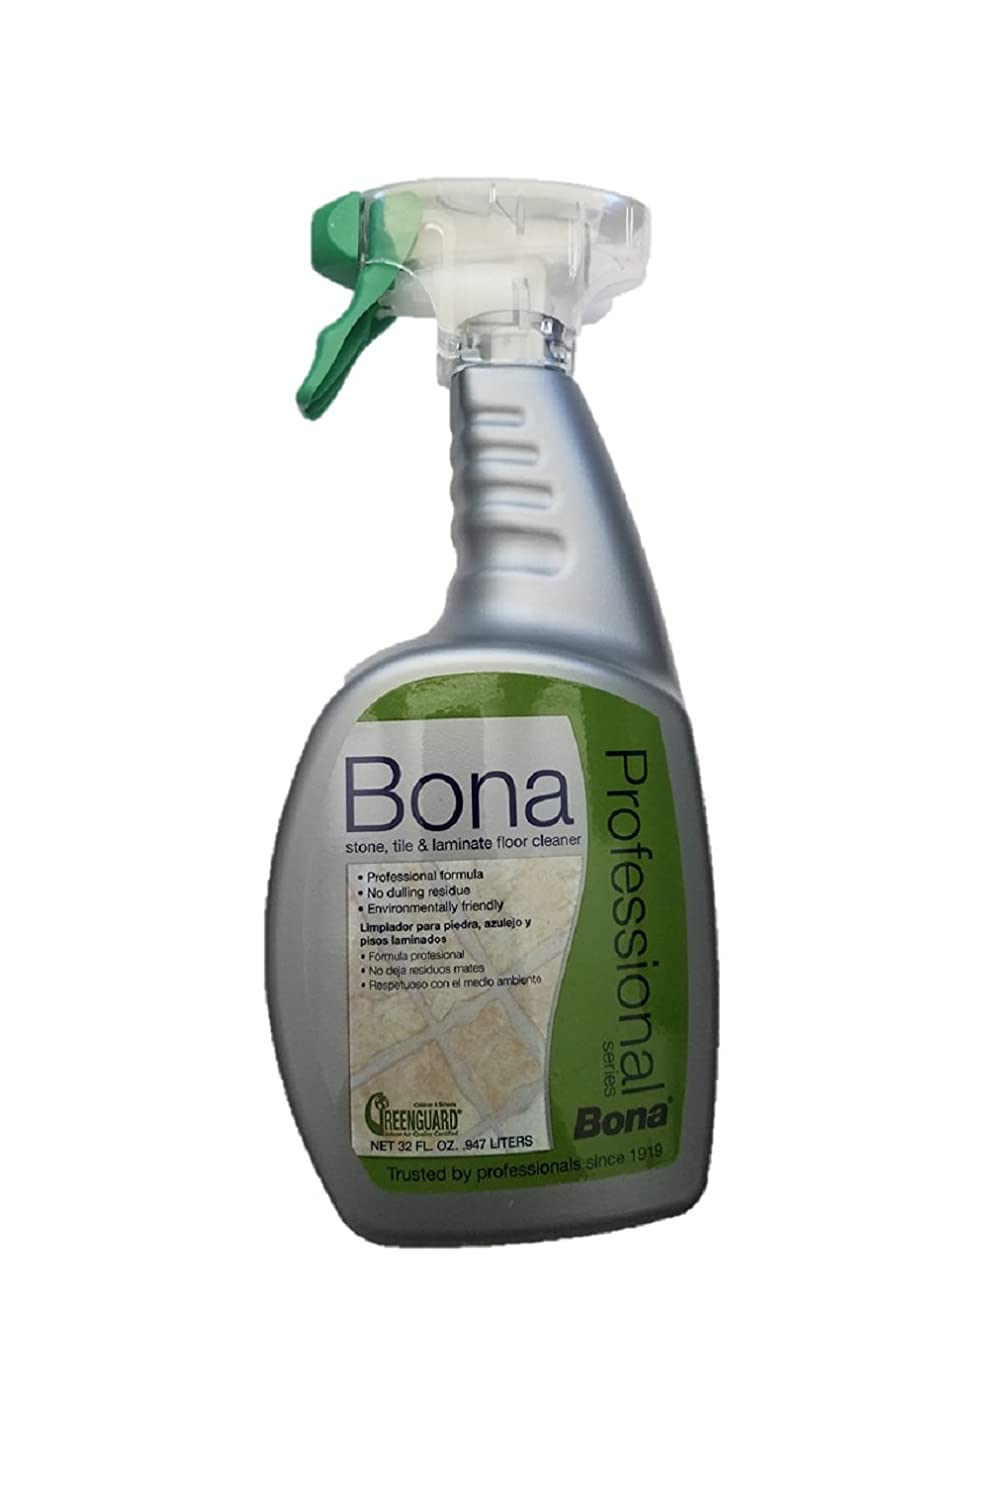 Home gt accessories gt bona pro series vinyl multipurpose cleaner - Amazon Com Bona Pro Series Wm700051188 Stone Tile And Laminate Cleaner Ready To Use 32 Ounce Spray Home Kitchen